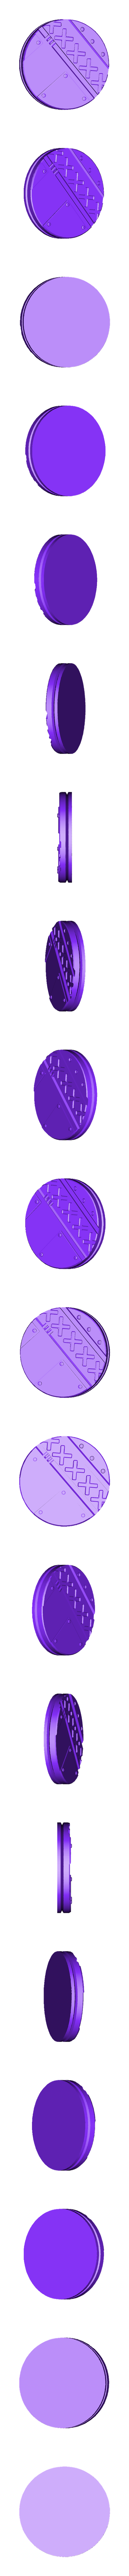 """Ship_A_-_1_inch.stl Download free STL file 1"""" & 2' Round Bases - The Ignis Quadrant • 3D printing template, ec3d"""